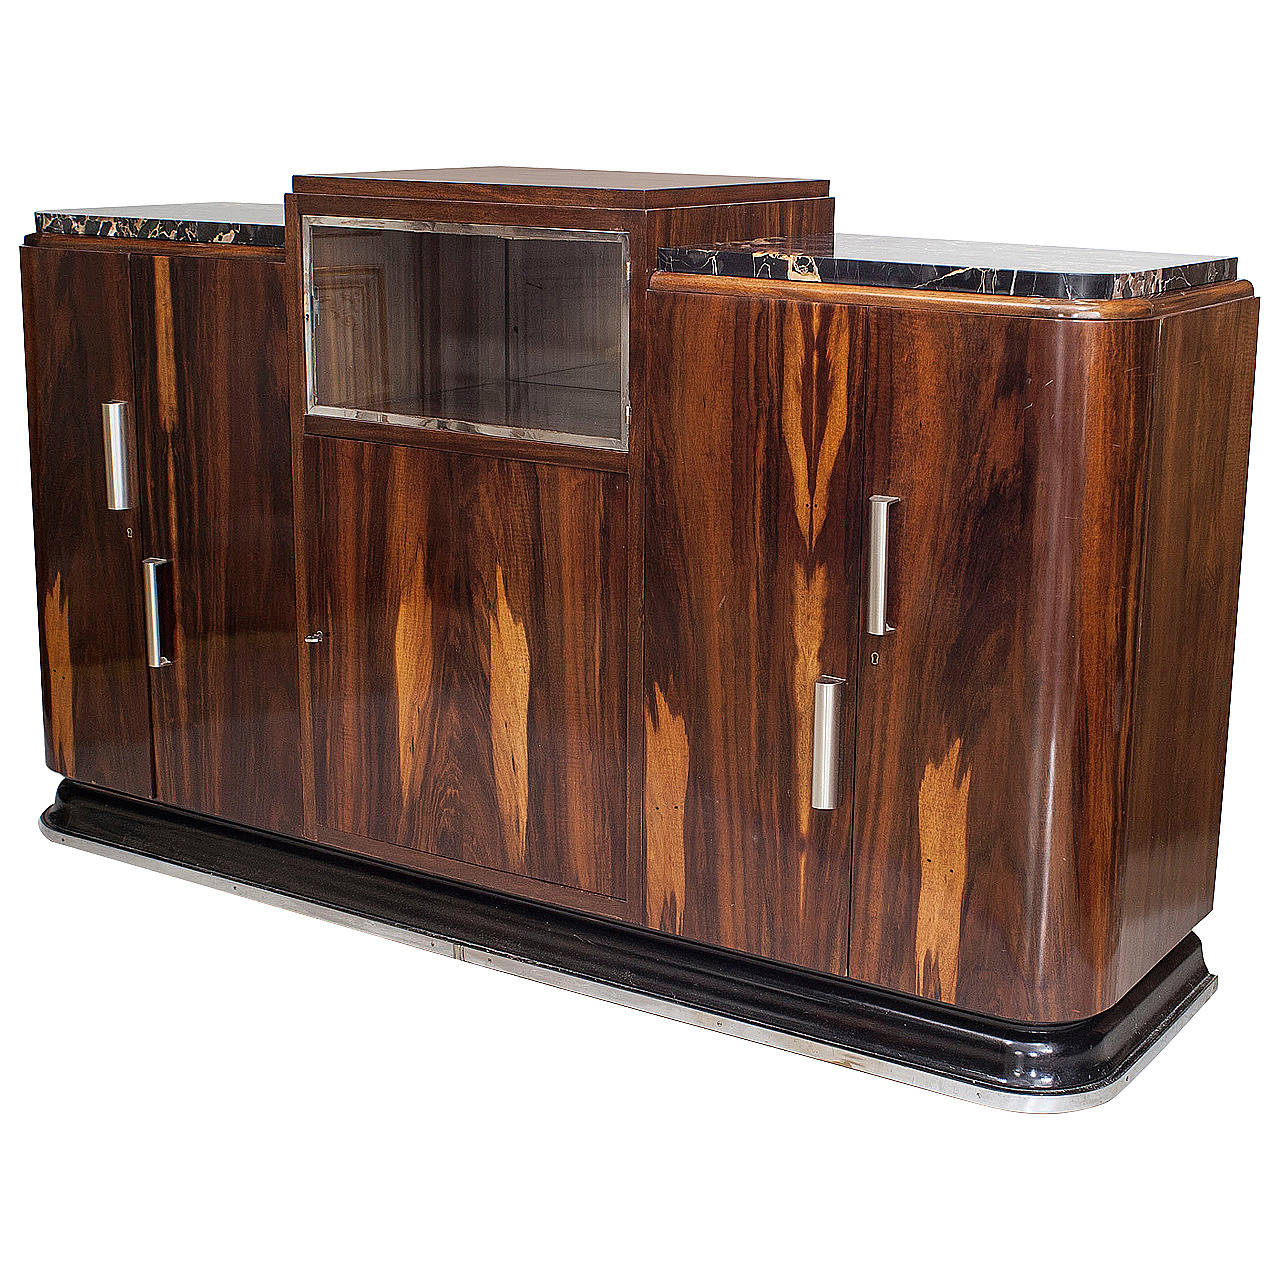 french art deco rosewood and chrome sideboard for sale at 1stdibs. Black Bedroom Furniture Sets. Home Design Ideas